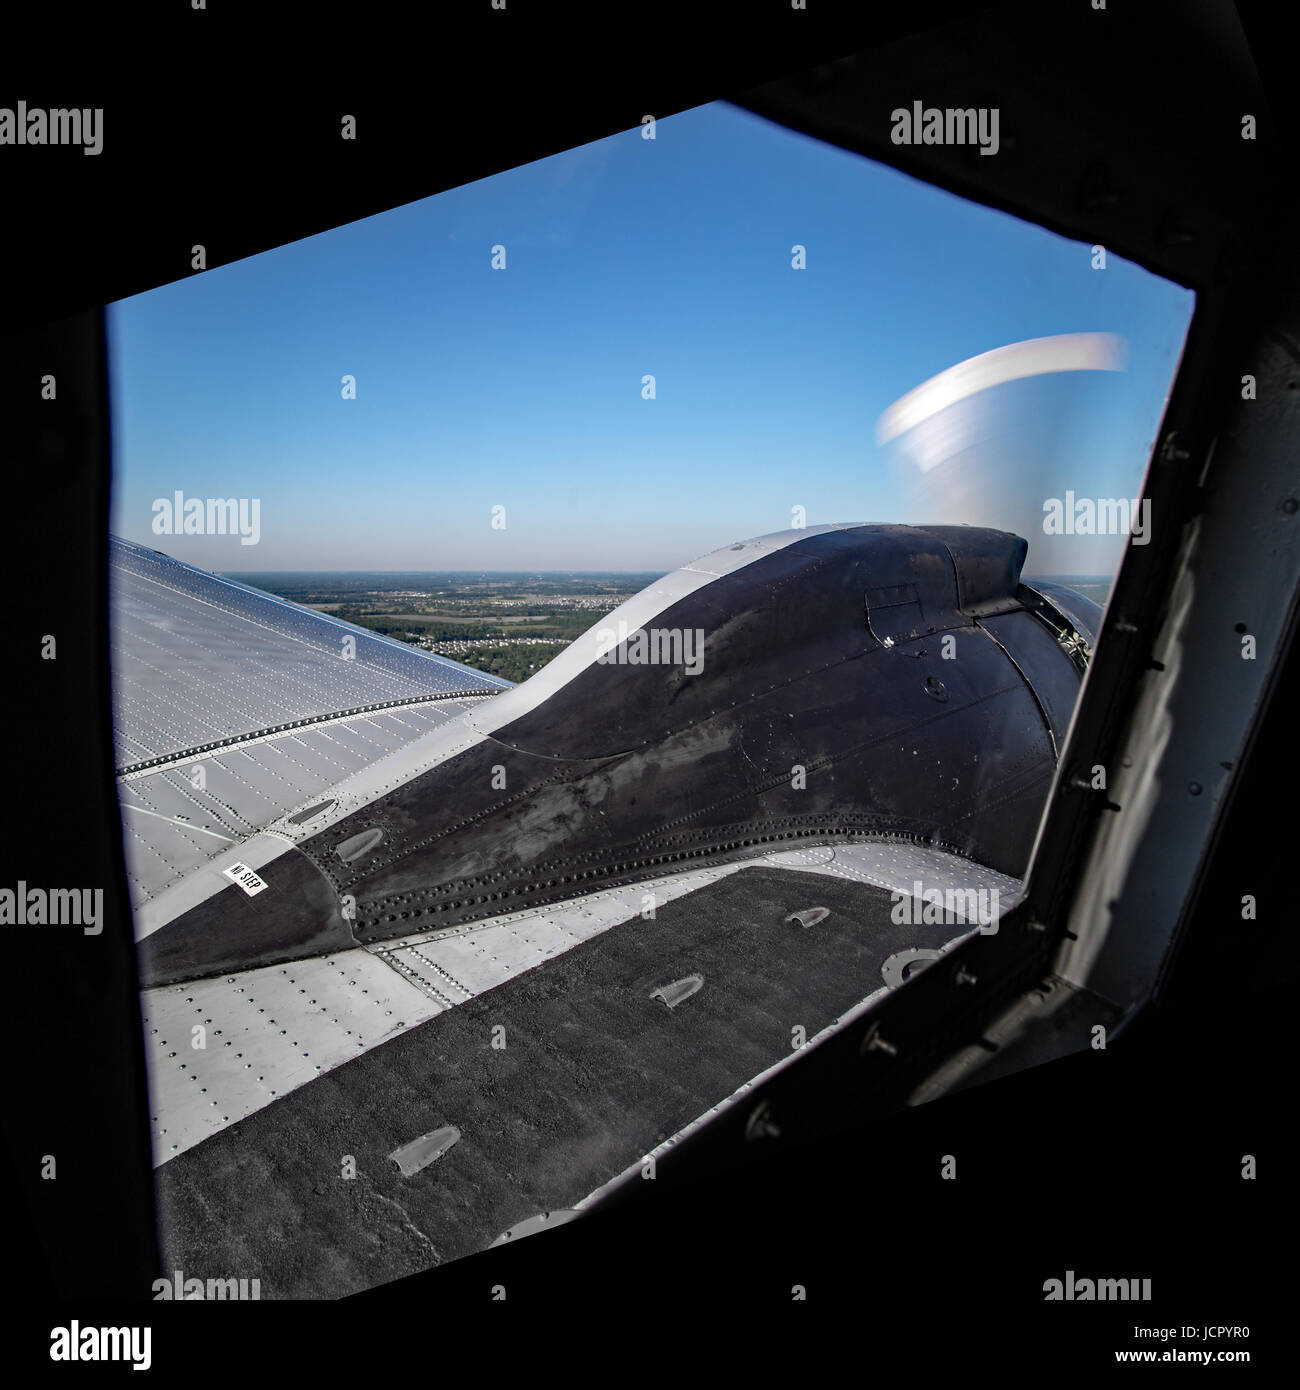 view of the sky, wing, and engine from  inside the airplane - Stock Image